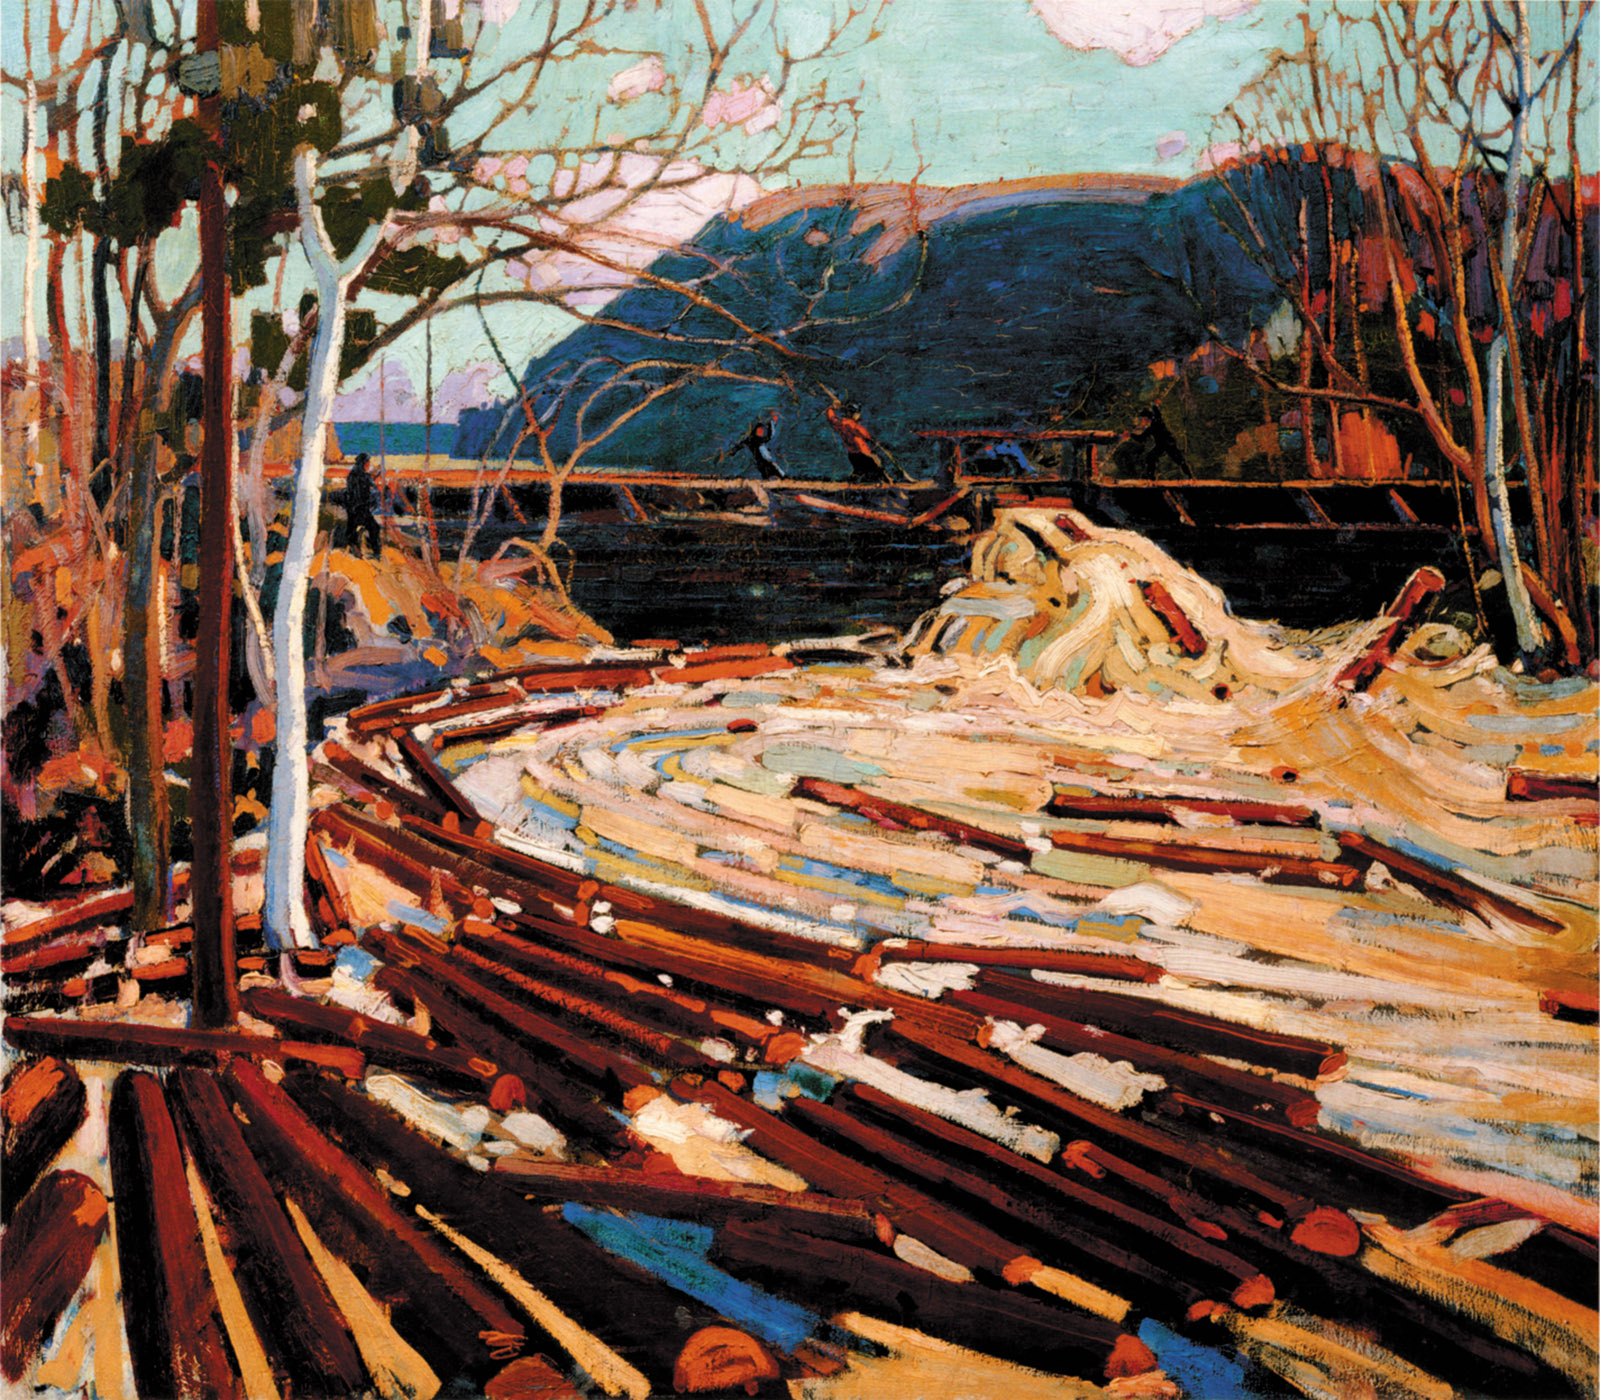 Tom Thomson: The Drive, showing the movement of logs downstream along the South River, near Algonquin Park, Ontario, 1916–1917; from Picturing the Americas: Landscape Painting from Tierra del Fuego to the Arctic, the catalog of a recent exhibition organized by the Art Gallery of Ontario, the Pinacoteca do Estado de São Paulo, and the Terra Foundation of American Art, and published by Yale University Press